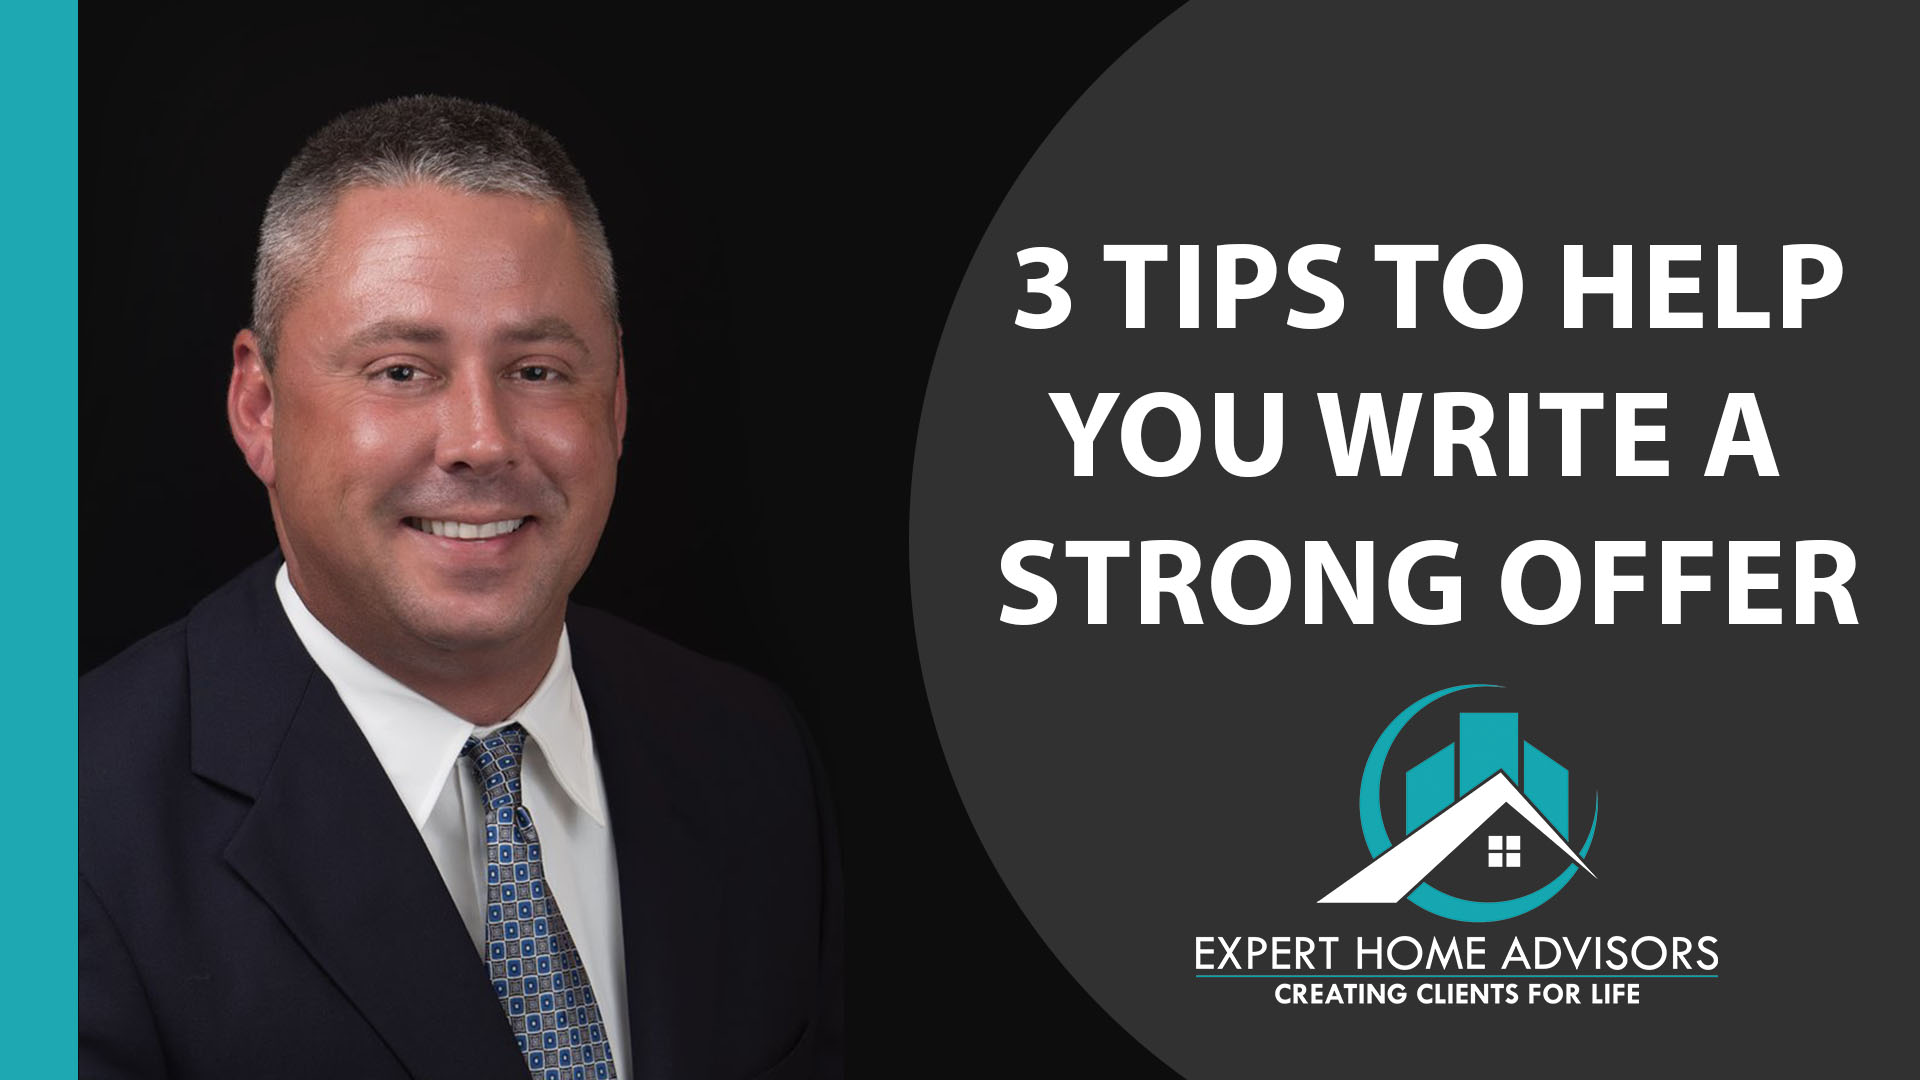 How to Write a Strong Offer on a Home